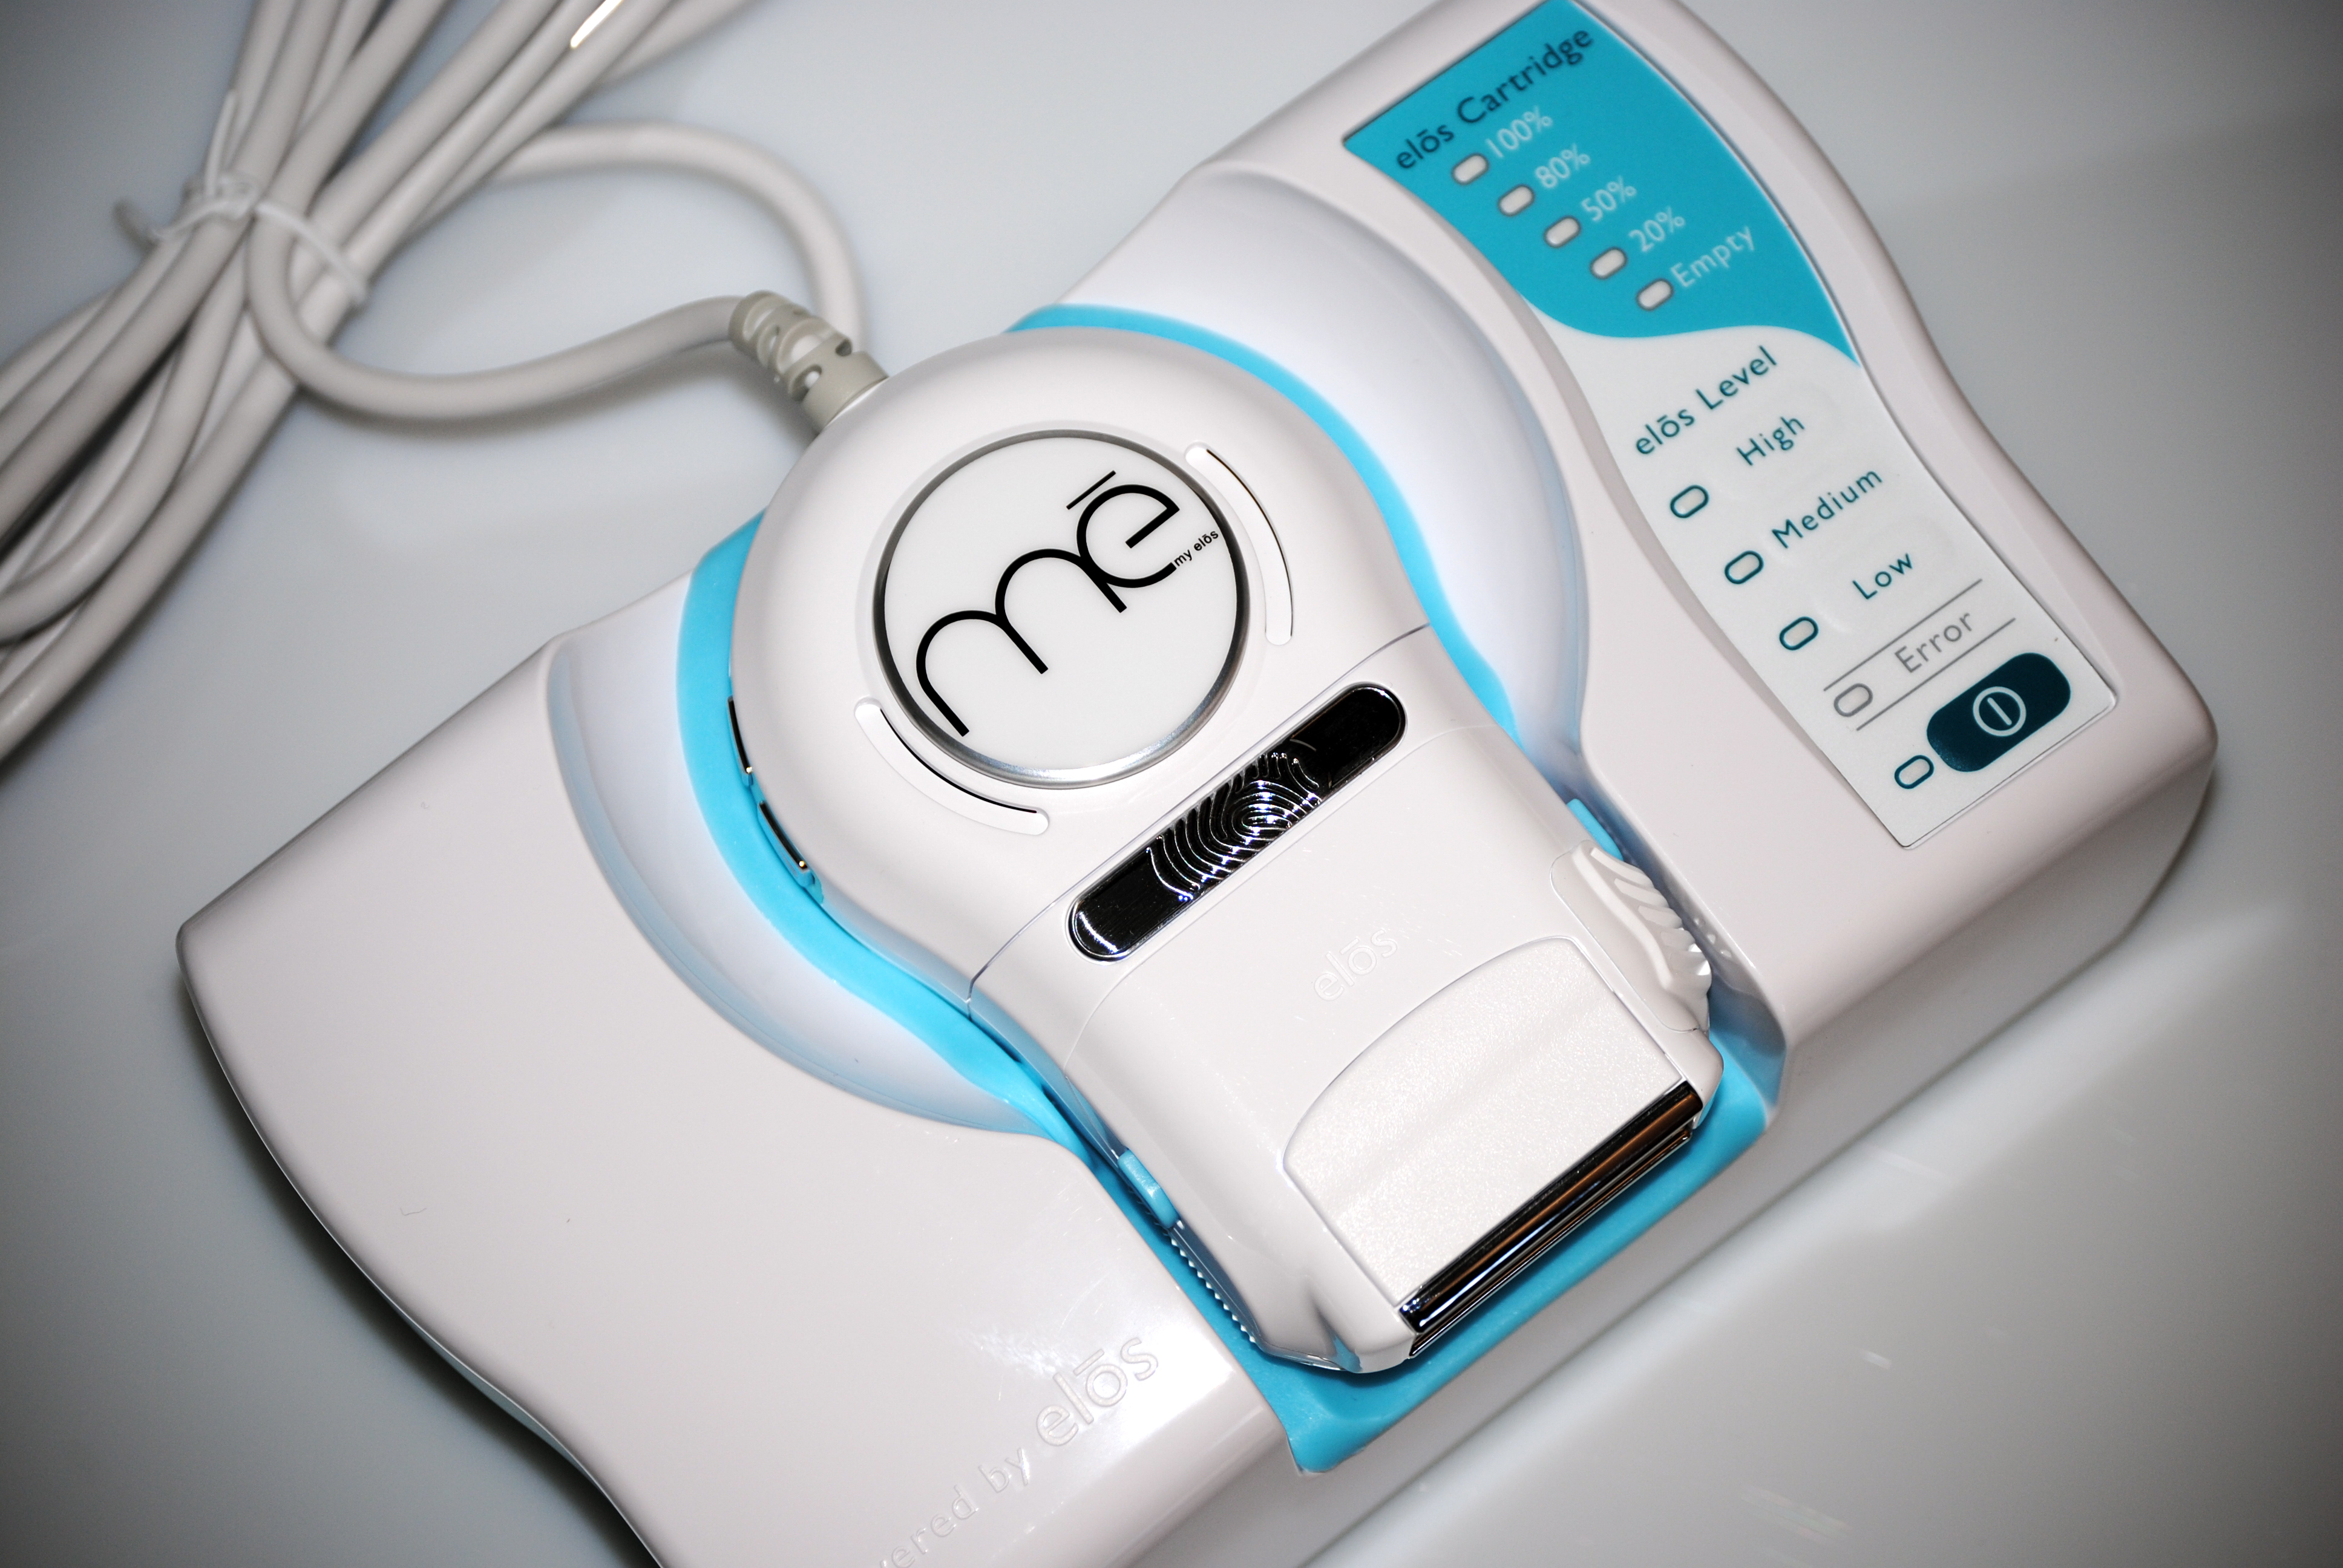 Me Smooth Elos At Home Hair Removal Reviews